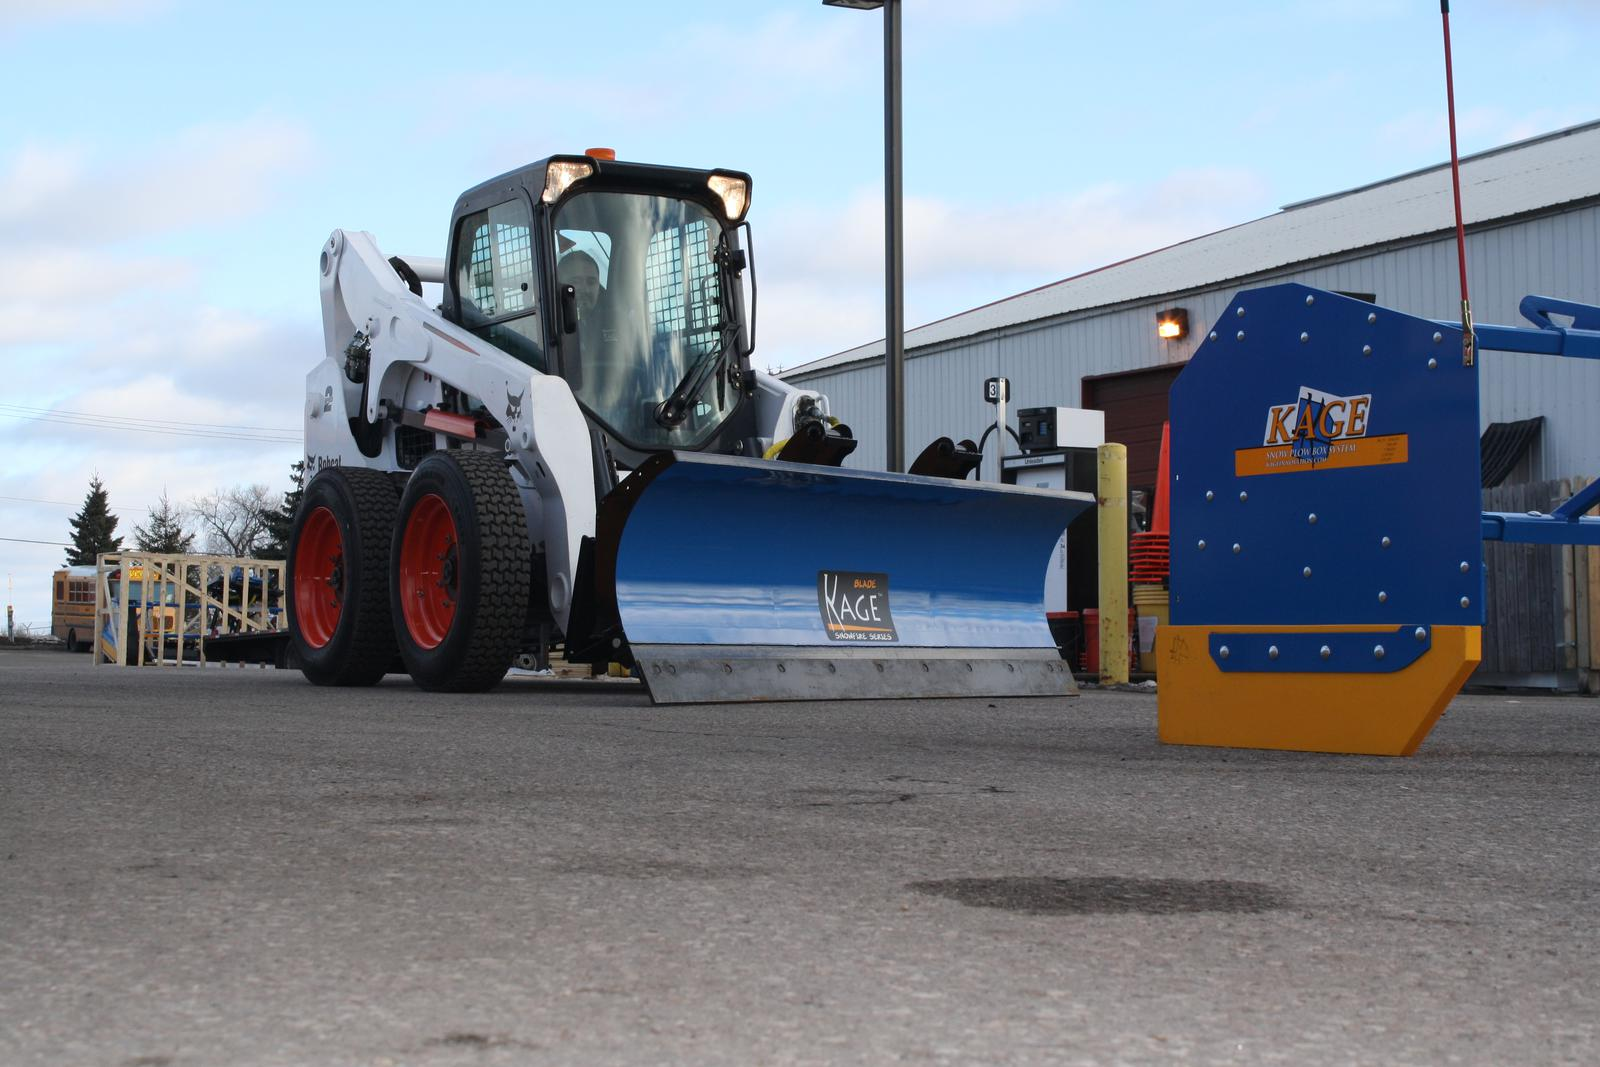 KAGE 2019 SBK108 - 9 foot Blade and Box Plow System